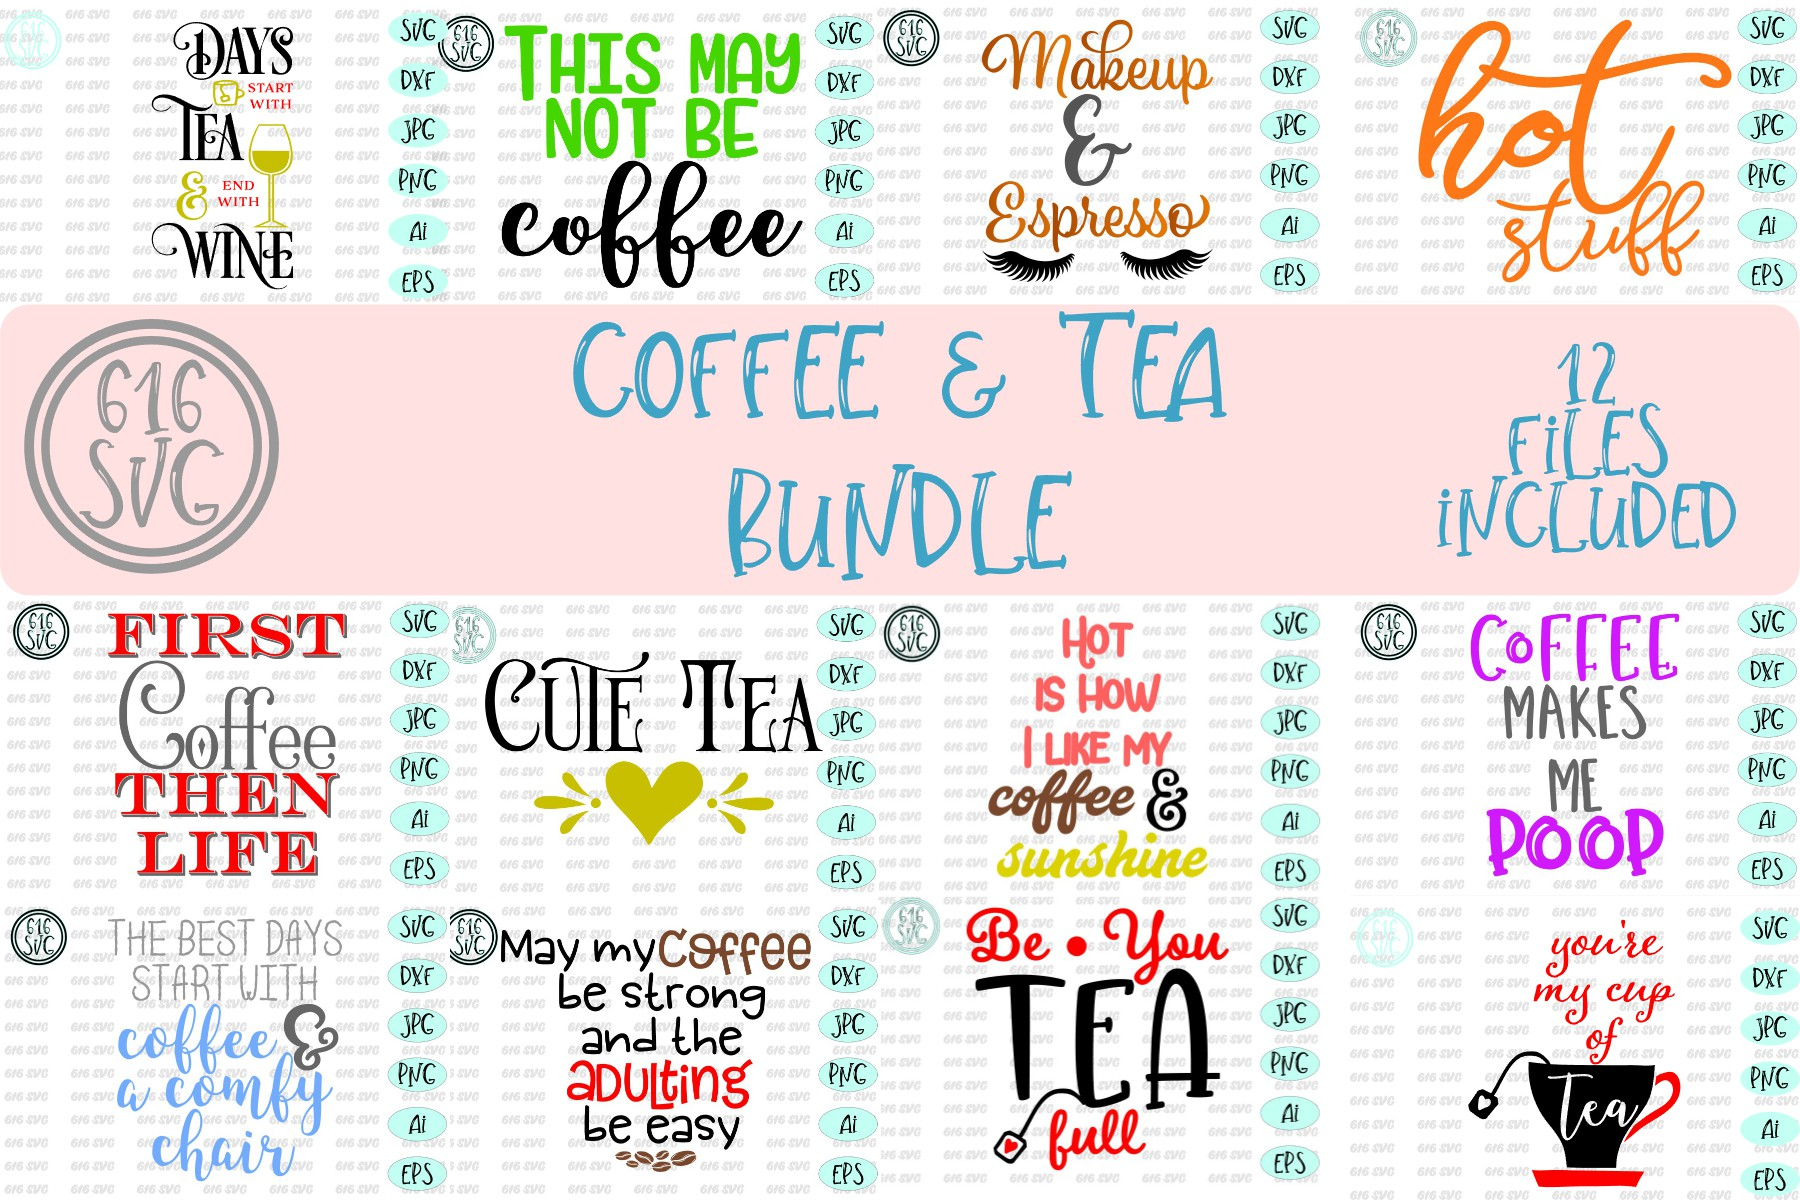 Coffee and Tea Bundle SVG, DXF, Ai, PNG example image 1